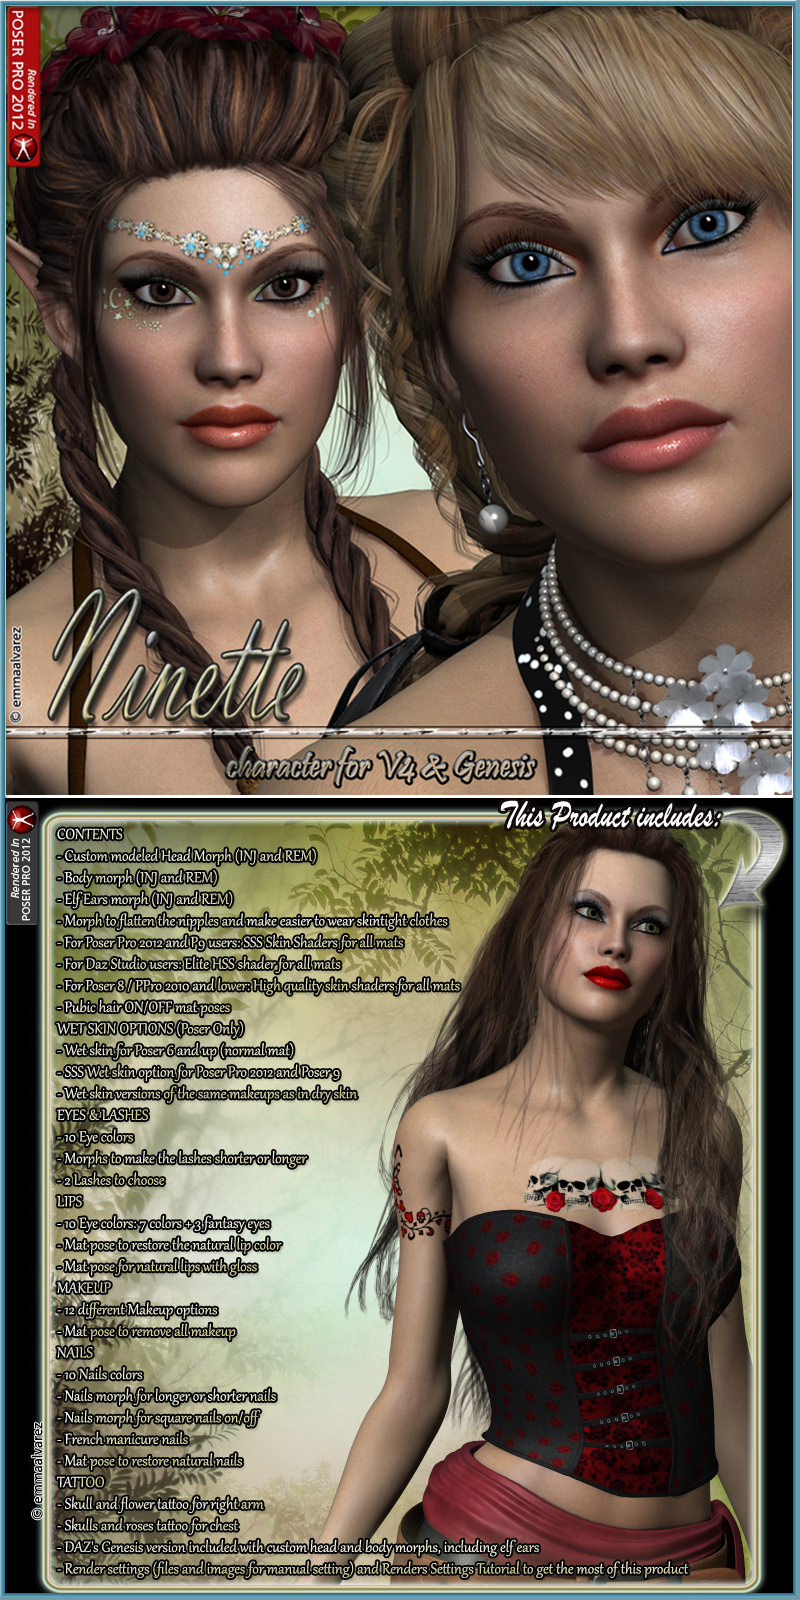 EA Ninette For V4 And Genesis by EmmaAndJordi